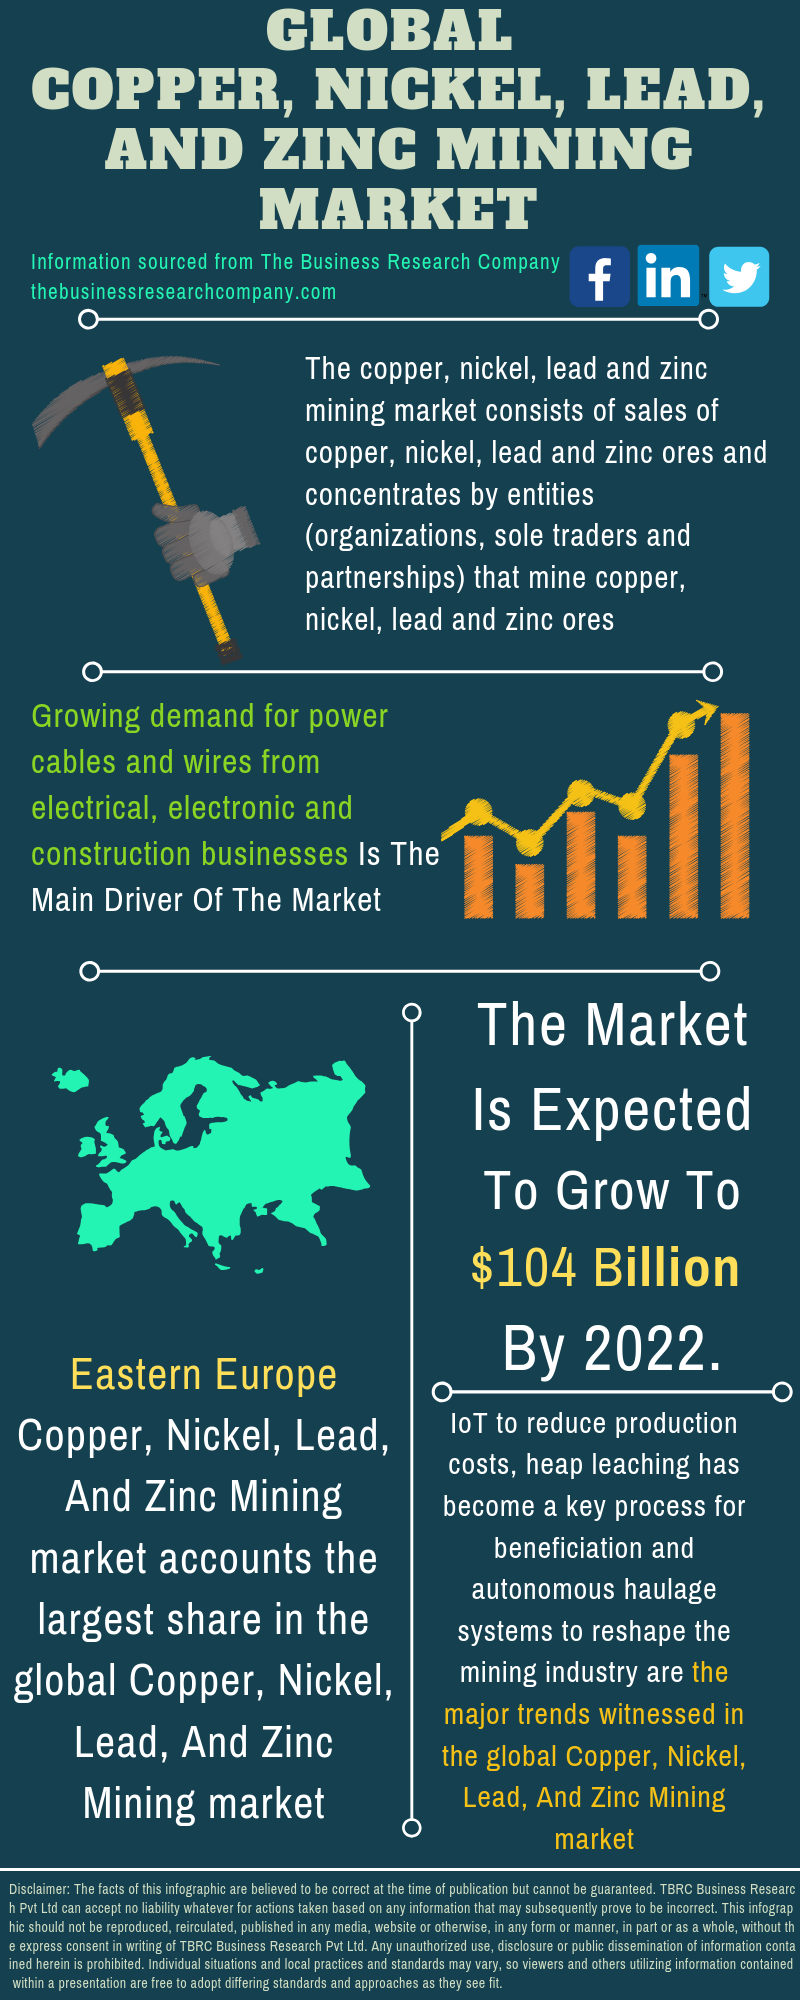 Copper, Nickel, Lead, And Zinc Mining Market